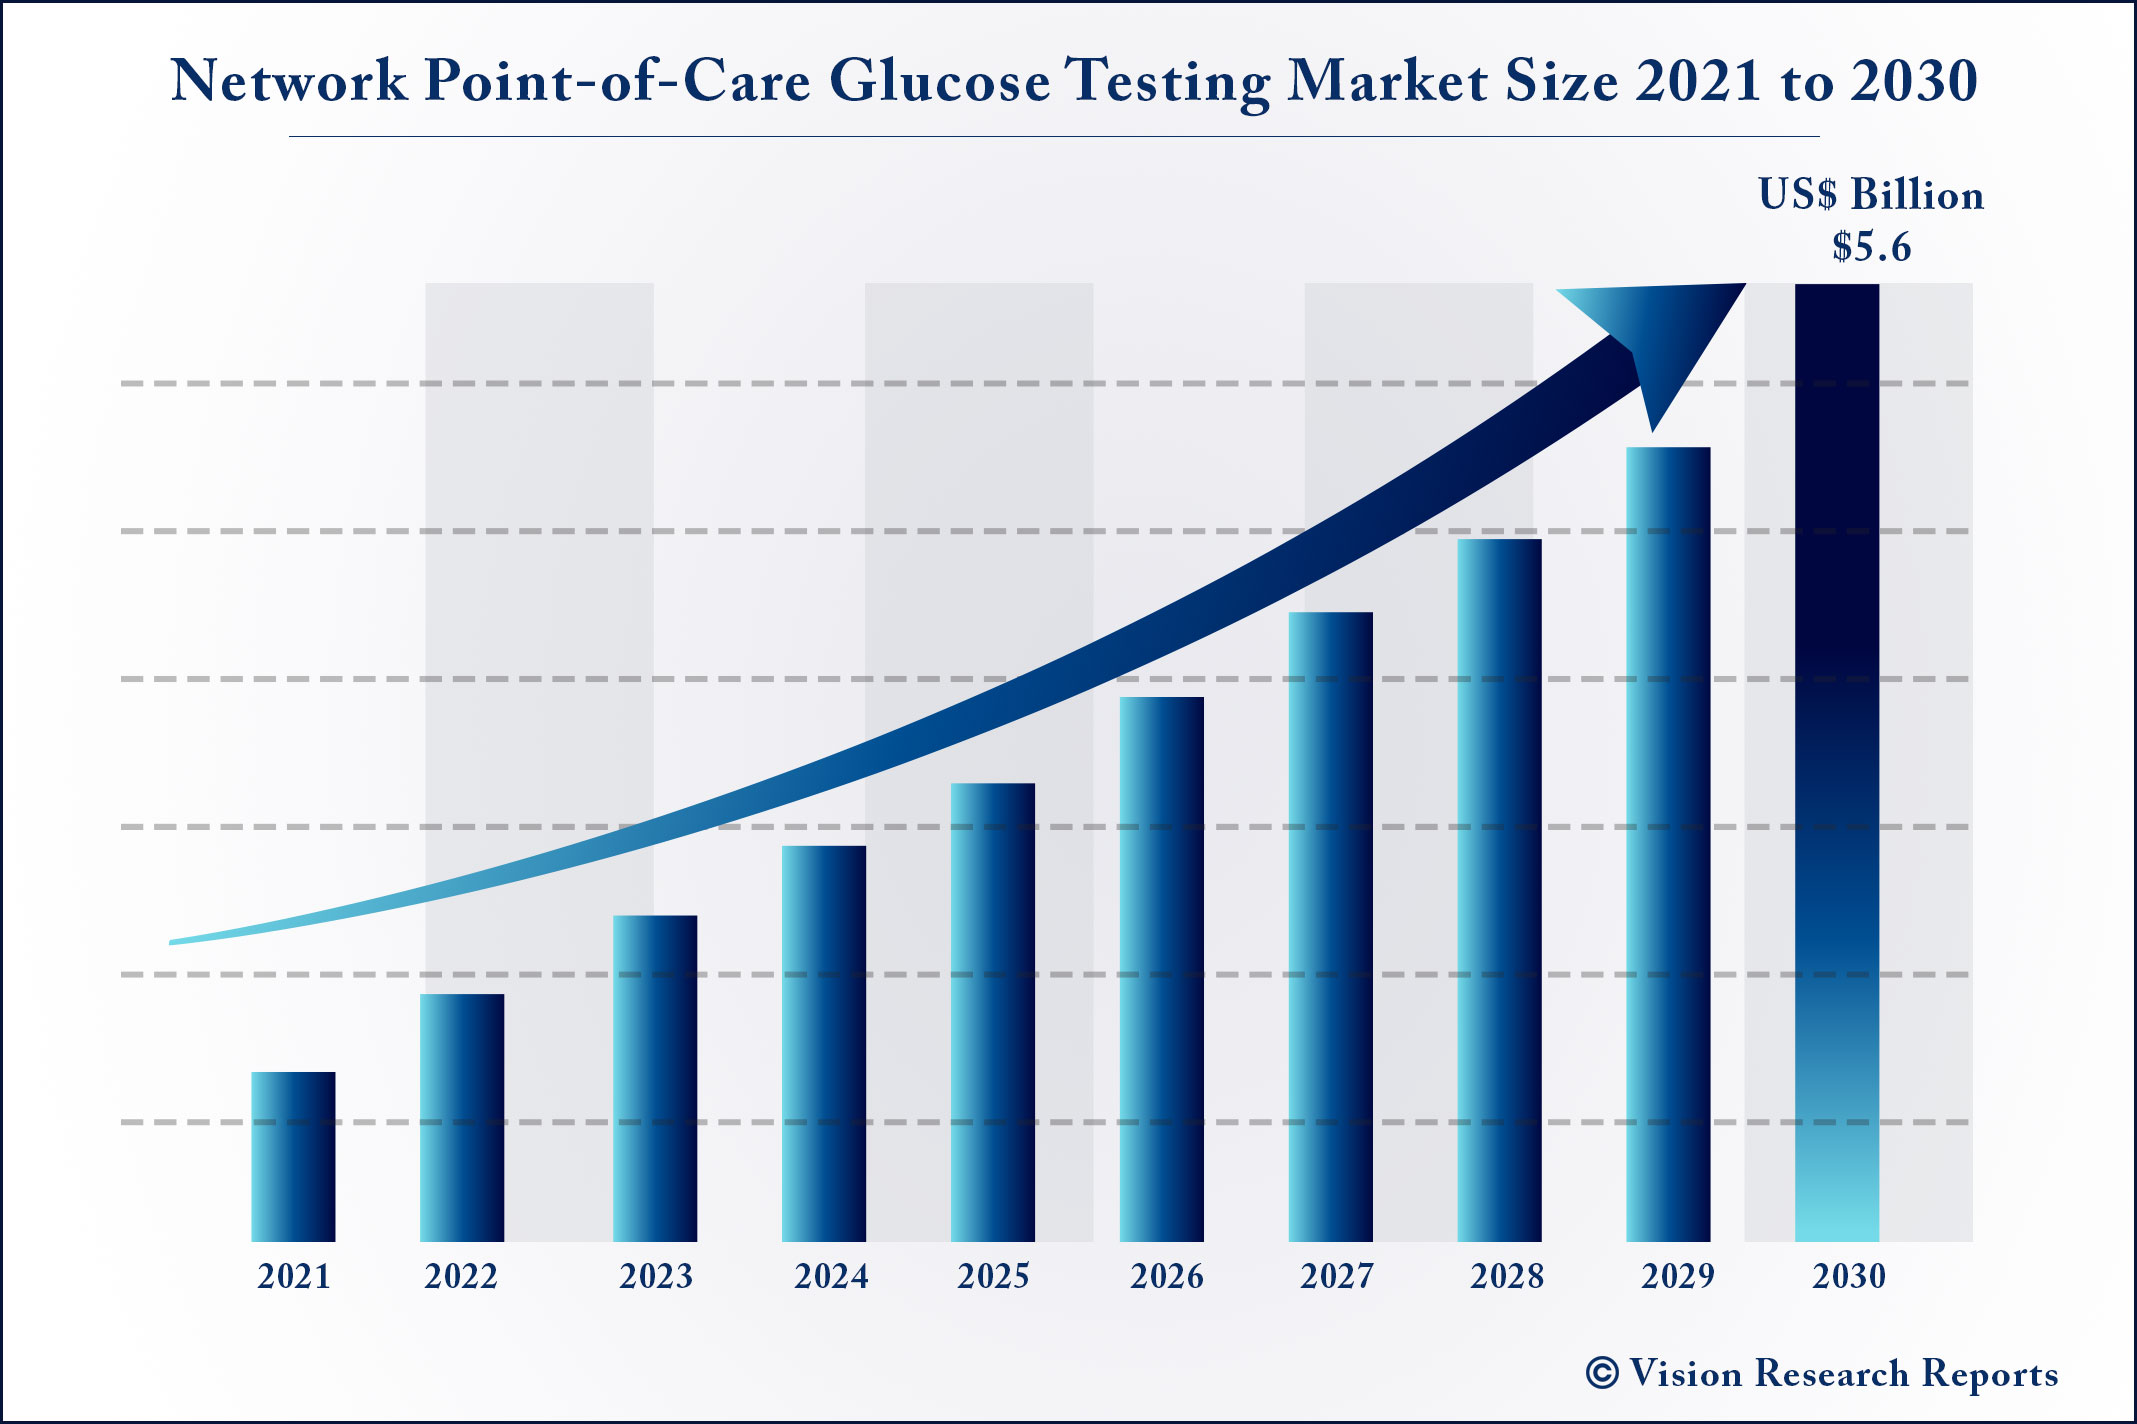 Network Point-of-Care Glucose Testing Market Size 2021 to 2030